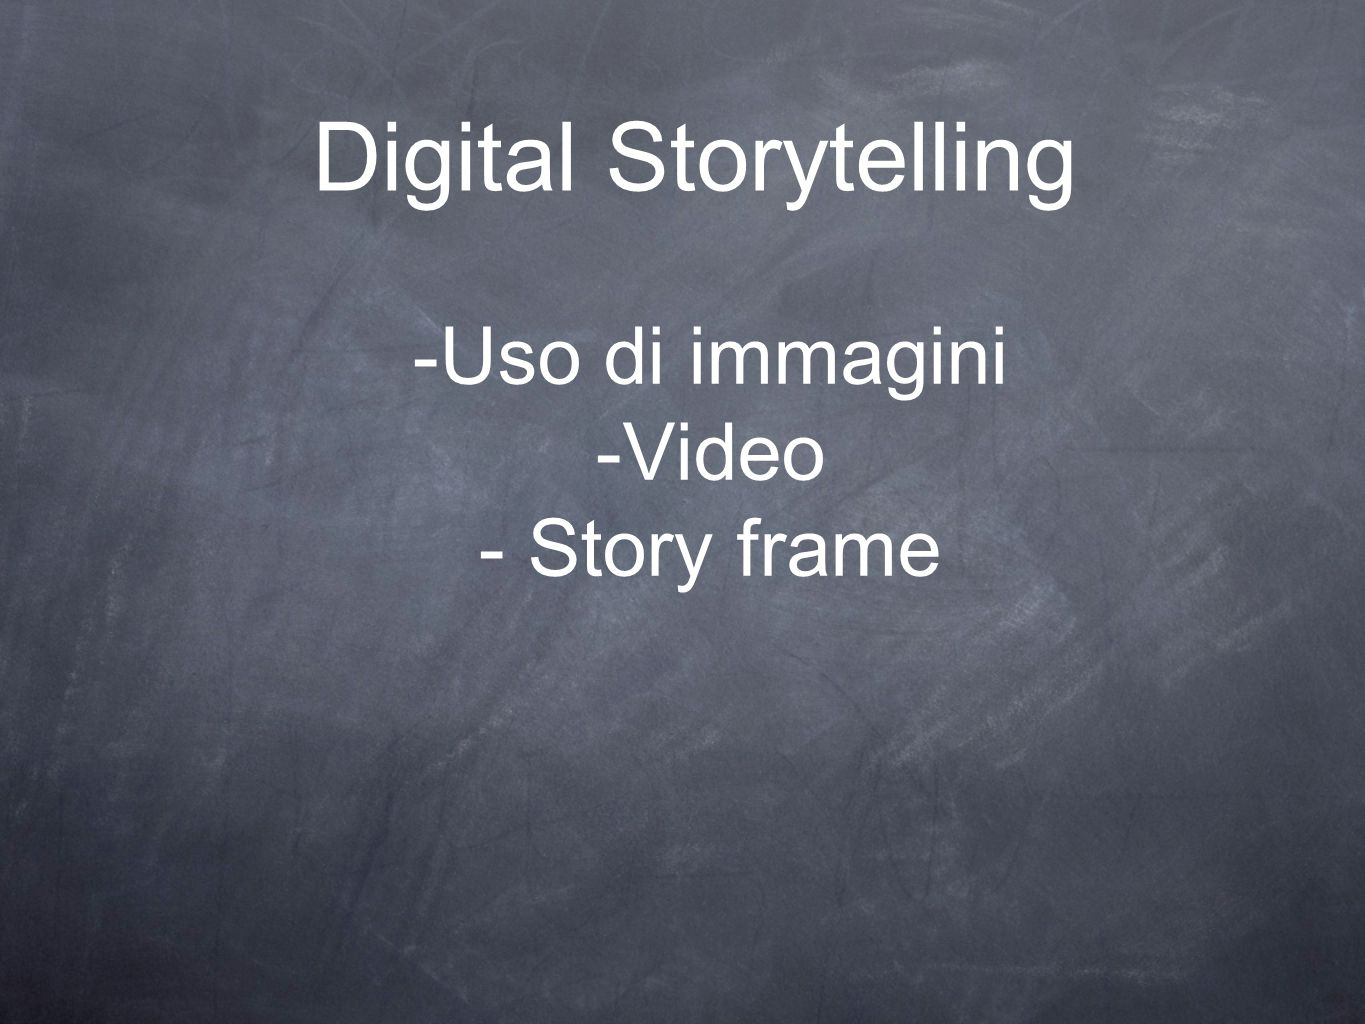 Digital Storytelling -Uso di immagini Video - Story frame